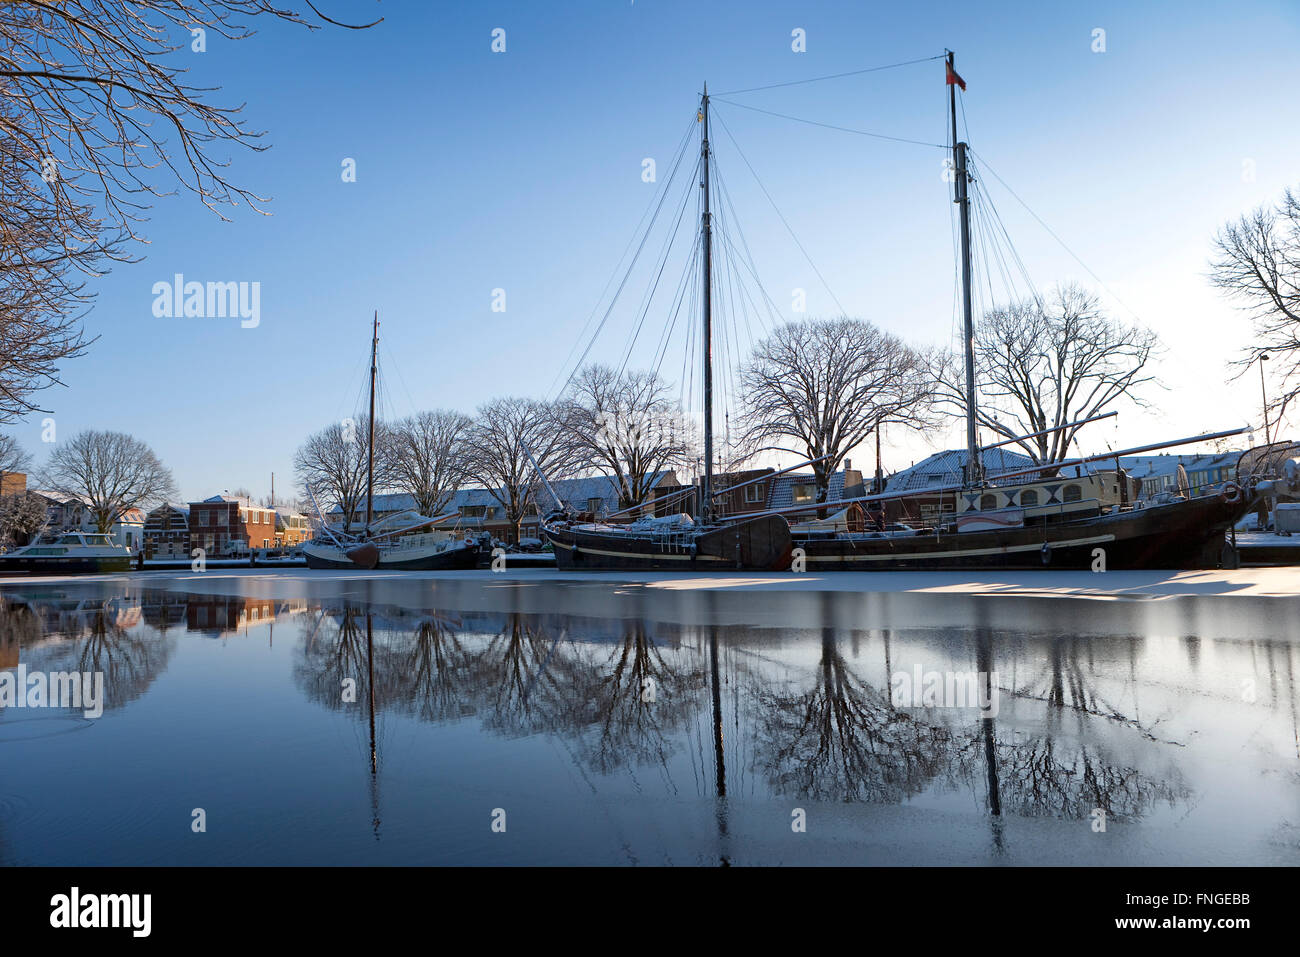 Dutch classic ships in the canal in Leiden in wintertime - Stock Image